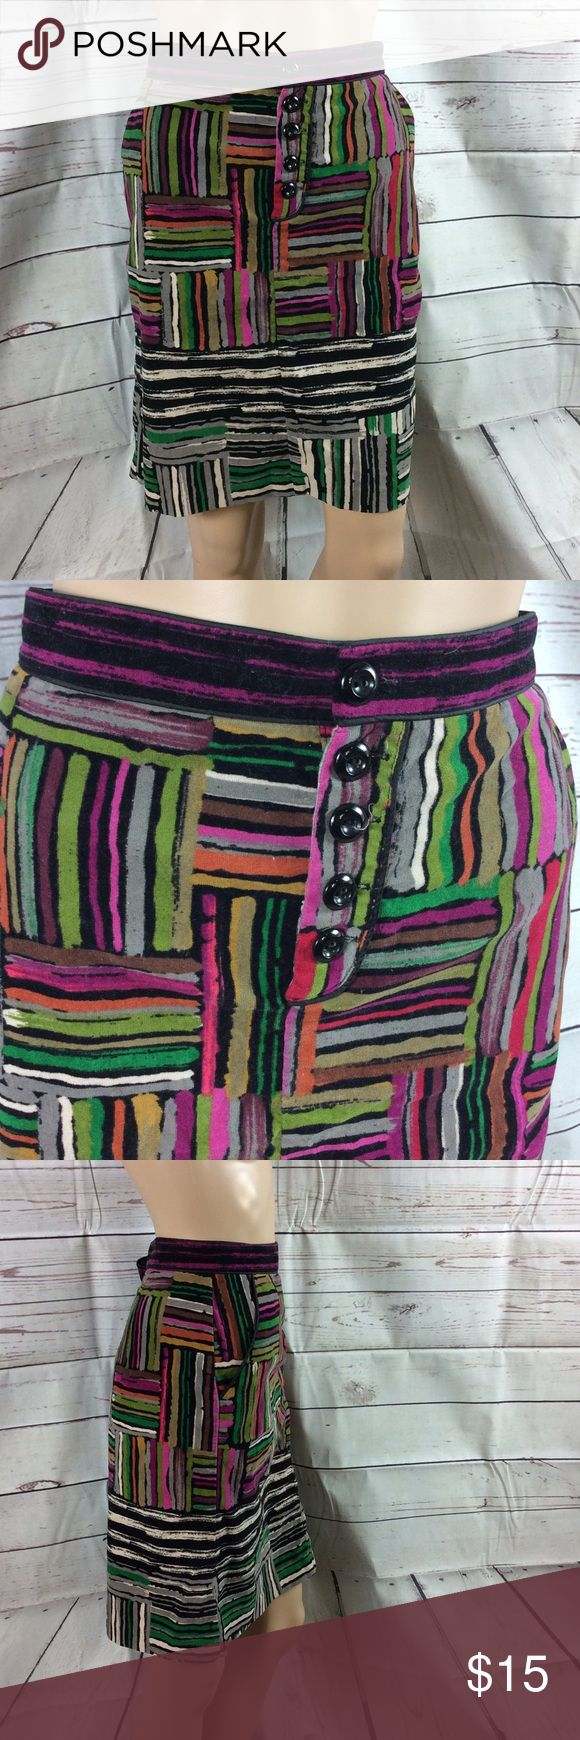 Odille By anthropologie Velvet skirt 12 Odille by anthropologie Velvet skirt Checked stripe detail Multicolored Button close detail Kick pleat in back Two side pockets Size 12 #Anthropologie#OdIlle#Velvet #ButtonDetail #Stripe/Check #Size12#Multicolored Anthropologie Skirts